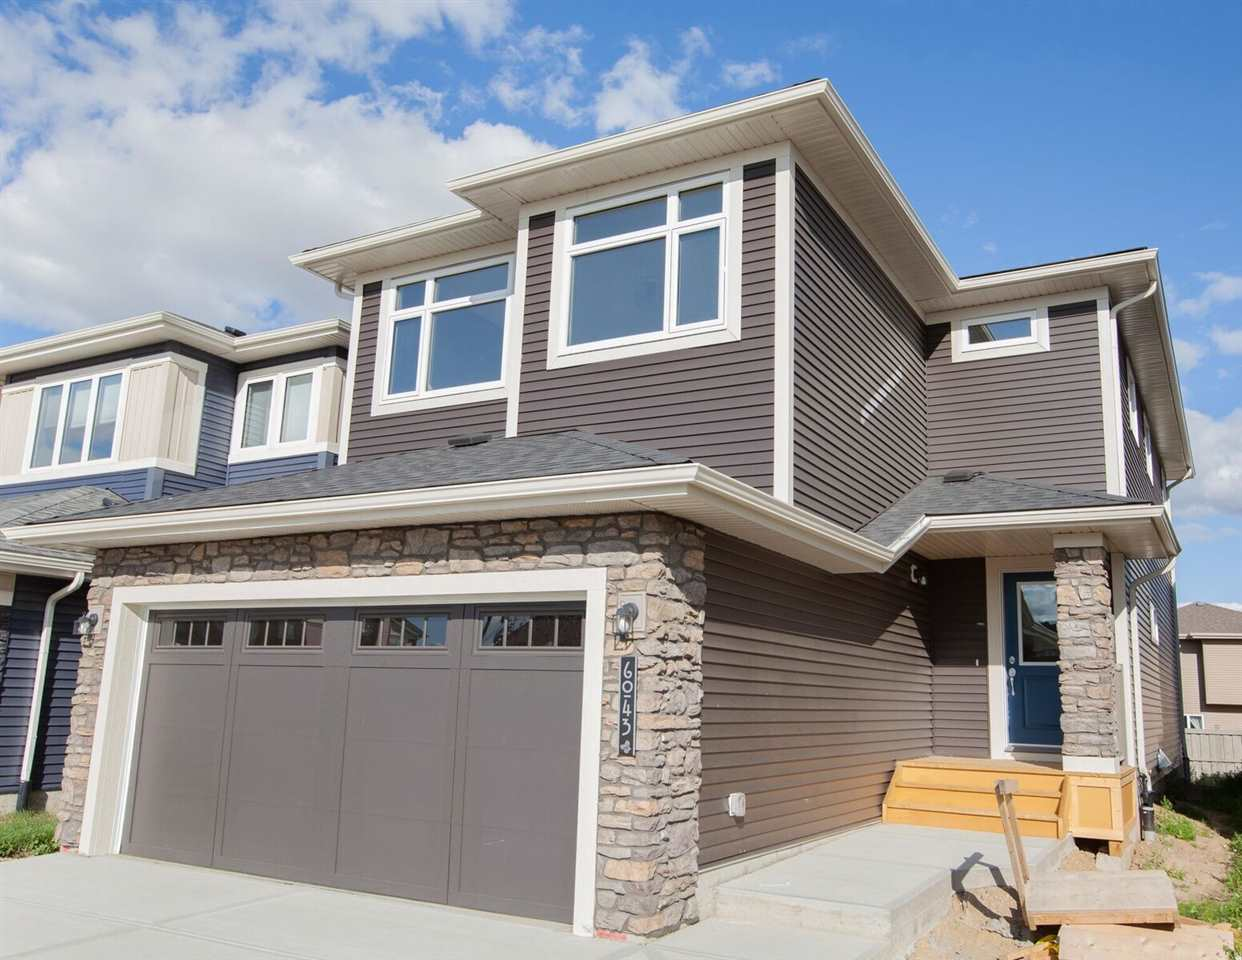 MLS® listing #E4172568 for sale located at 6043 Rosenthal Way NW